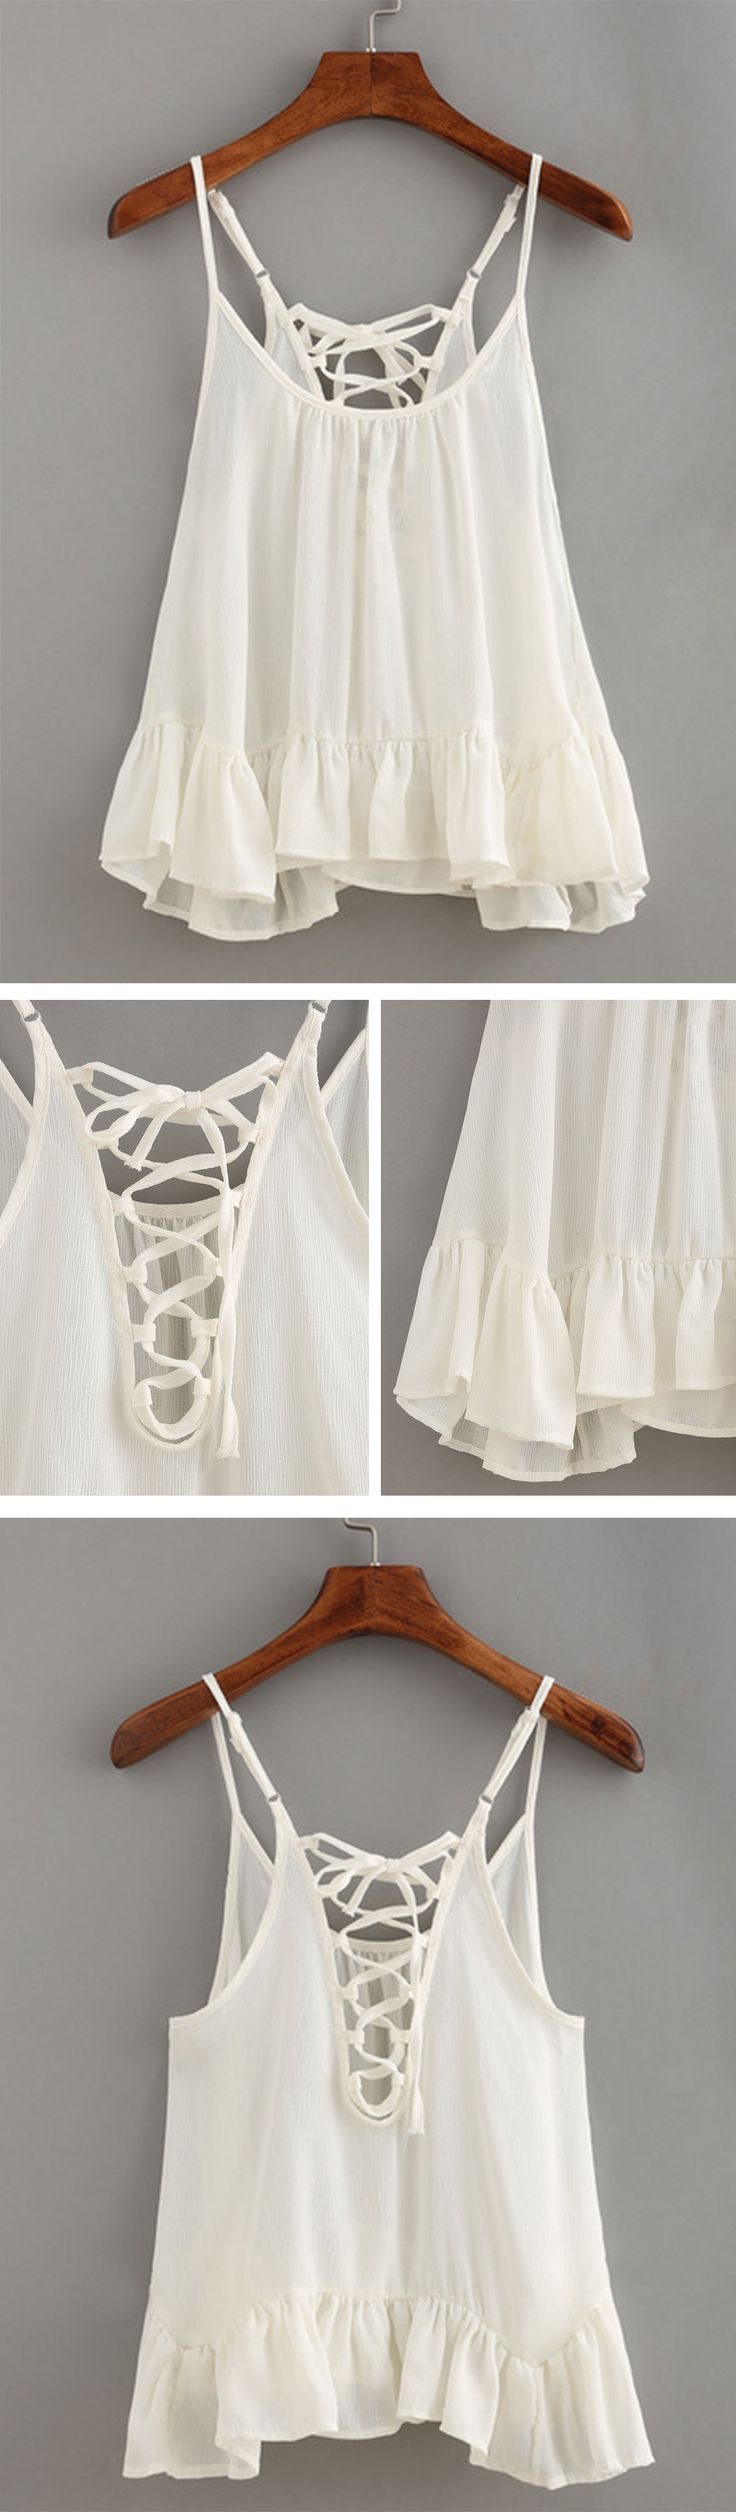 nice A dreaming Lace-Up Ruffled Hem Cami Top that's great for the girl on a budge...